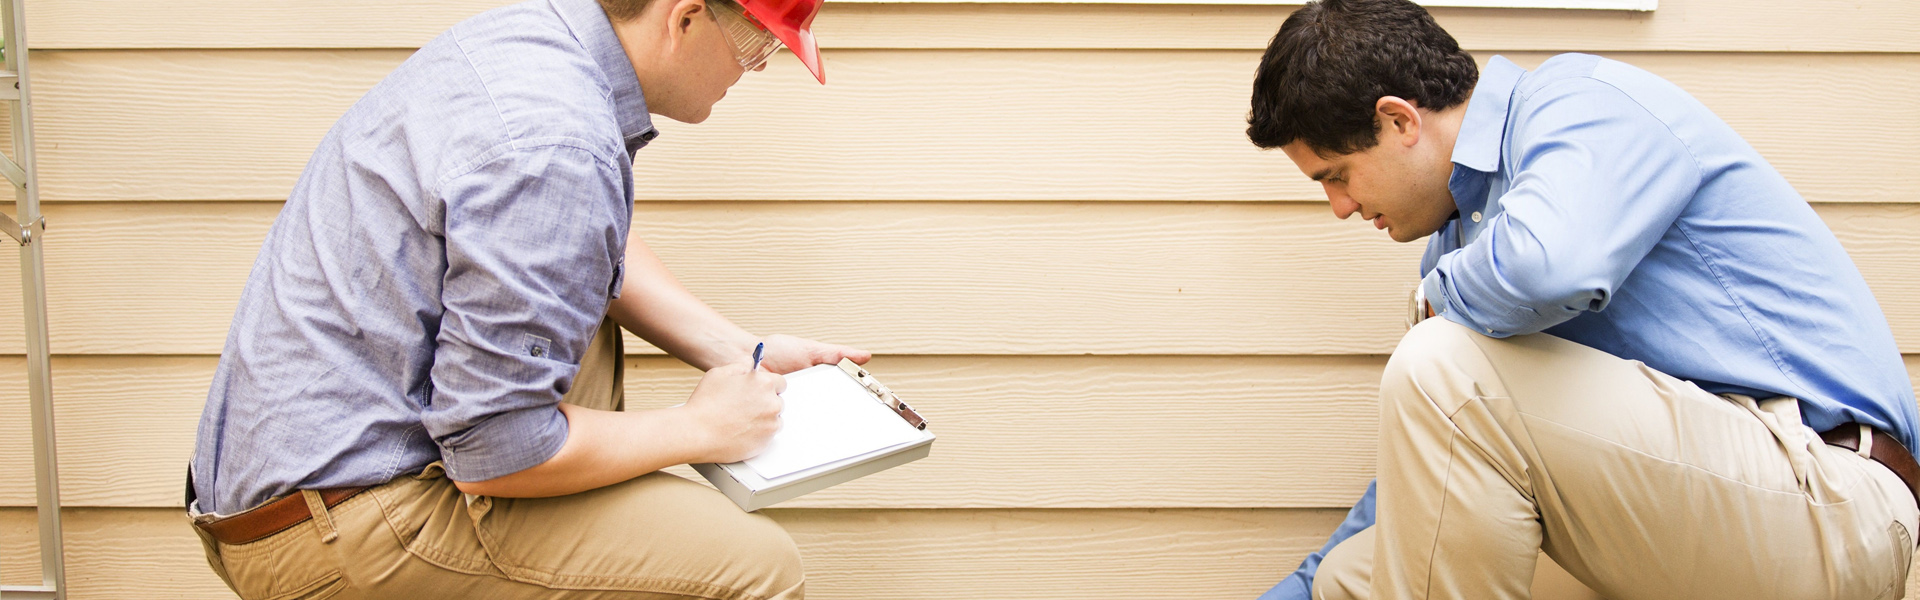 Building Inspections Brisbane – Find All The Issues With Ease